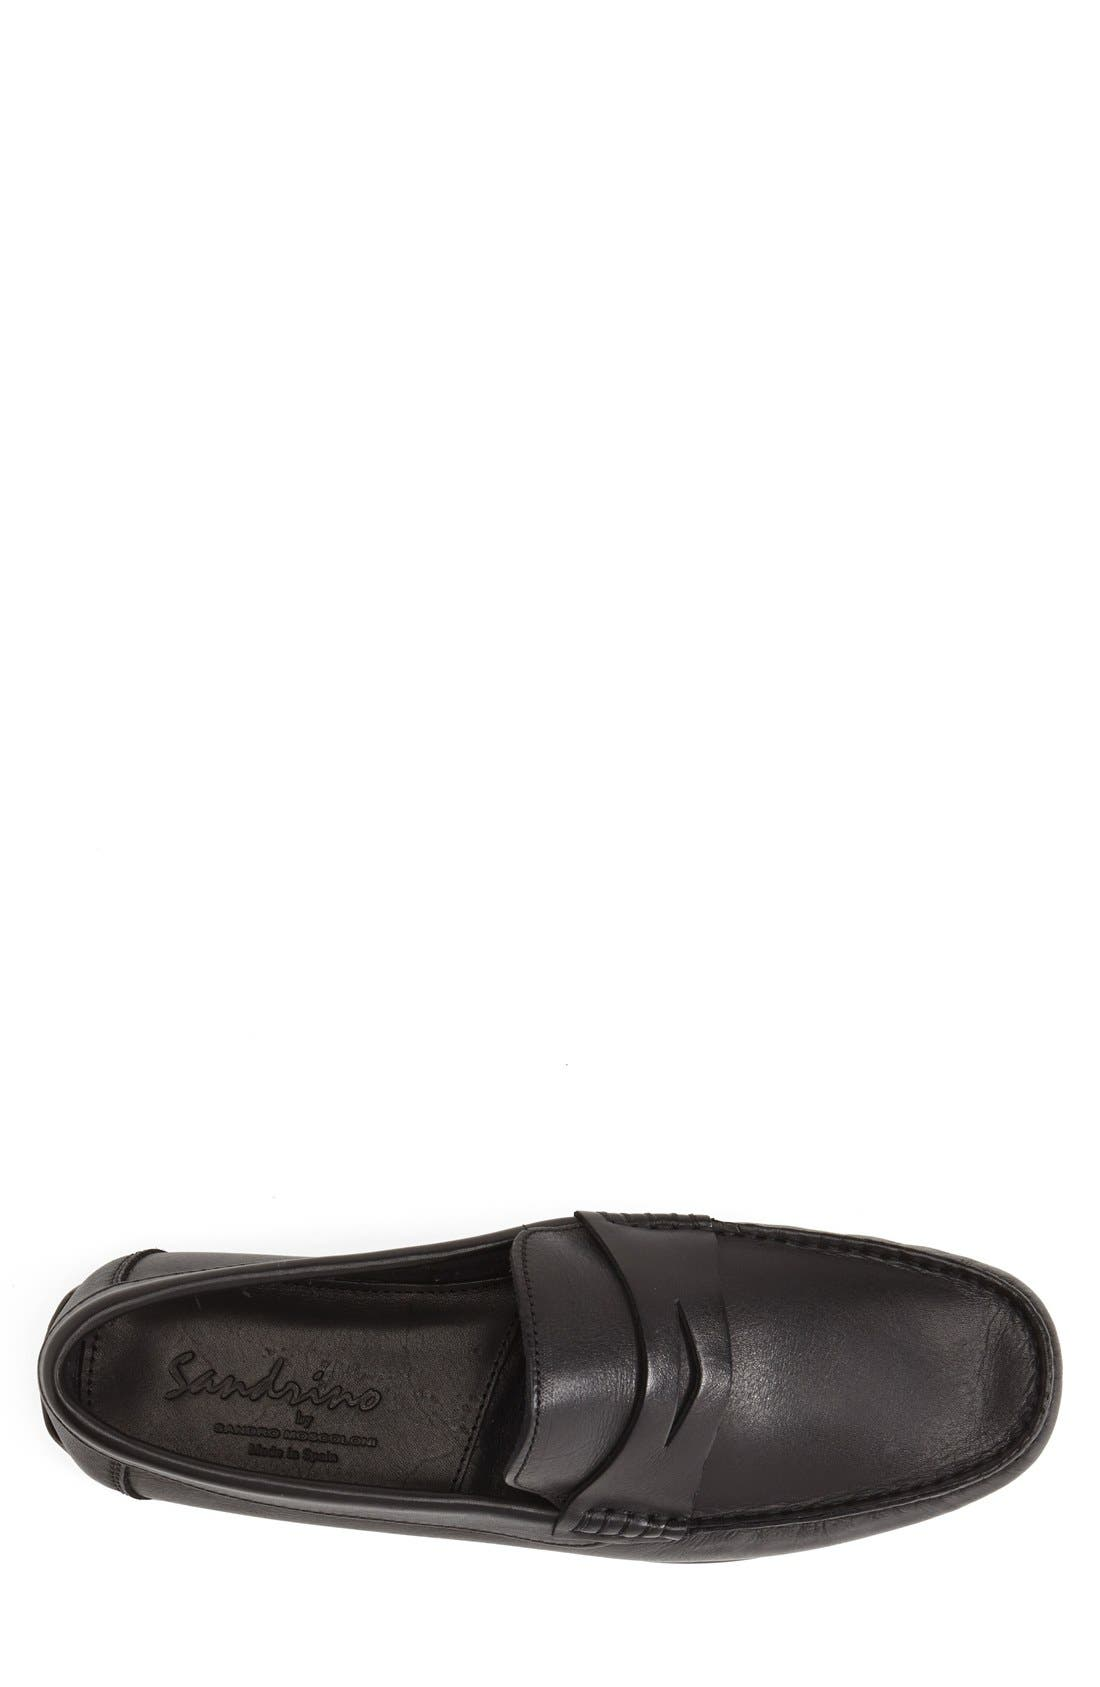 'Paris' Leather Penny Loafer,                             Alternate thumbnail 3, color,                             BLACK